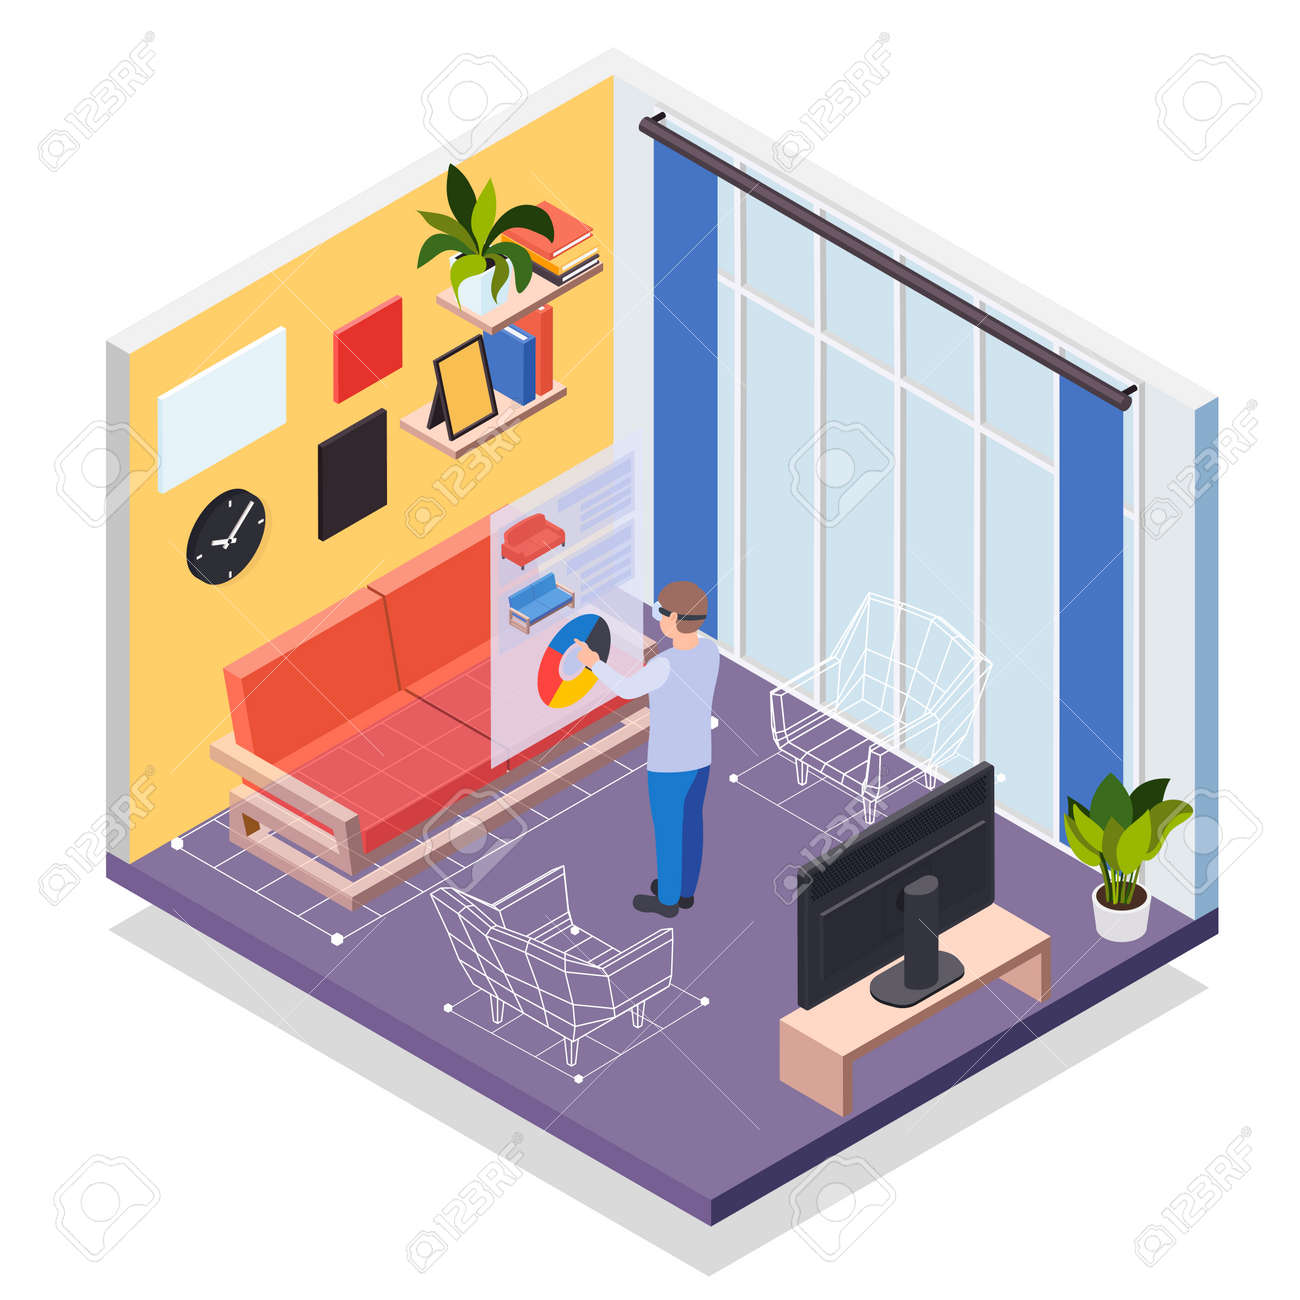 Augmented reality furniture isometric concept with man in vr headset simulating his presence in virtual living room vector illustration - 157862659